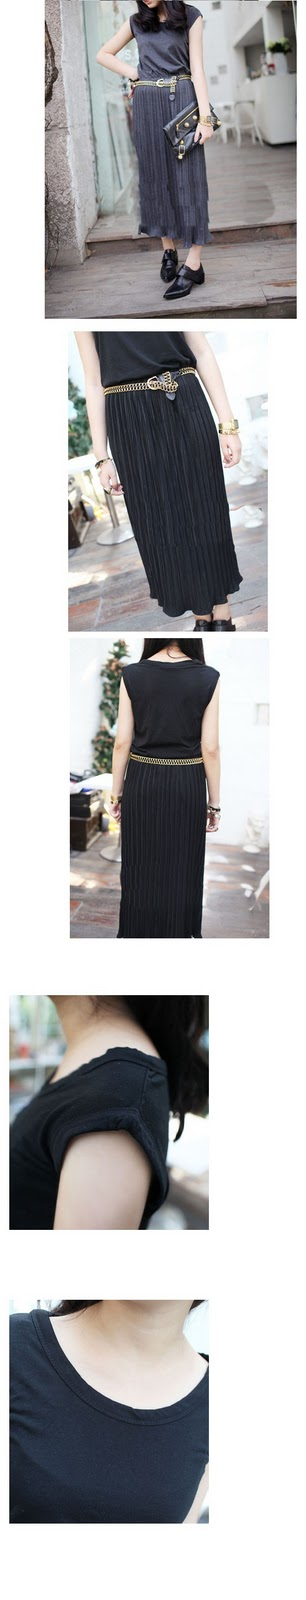 mazzy side cutout dress. Pleated Long Dress 2